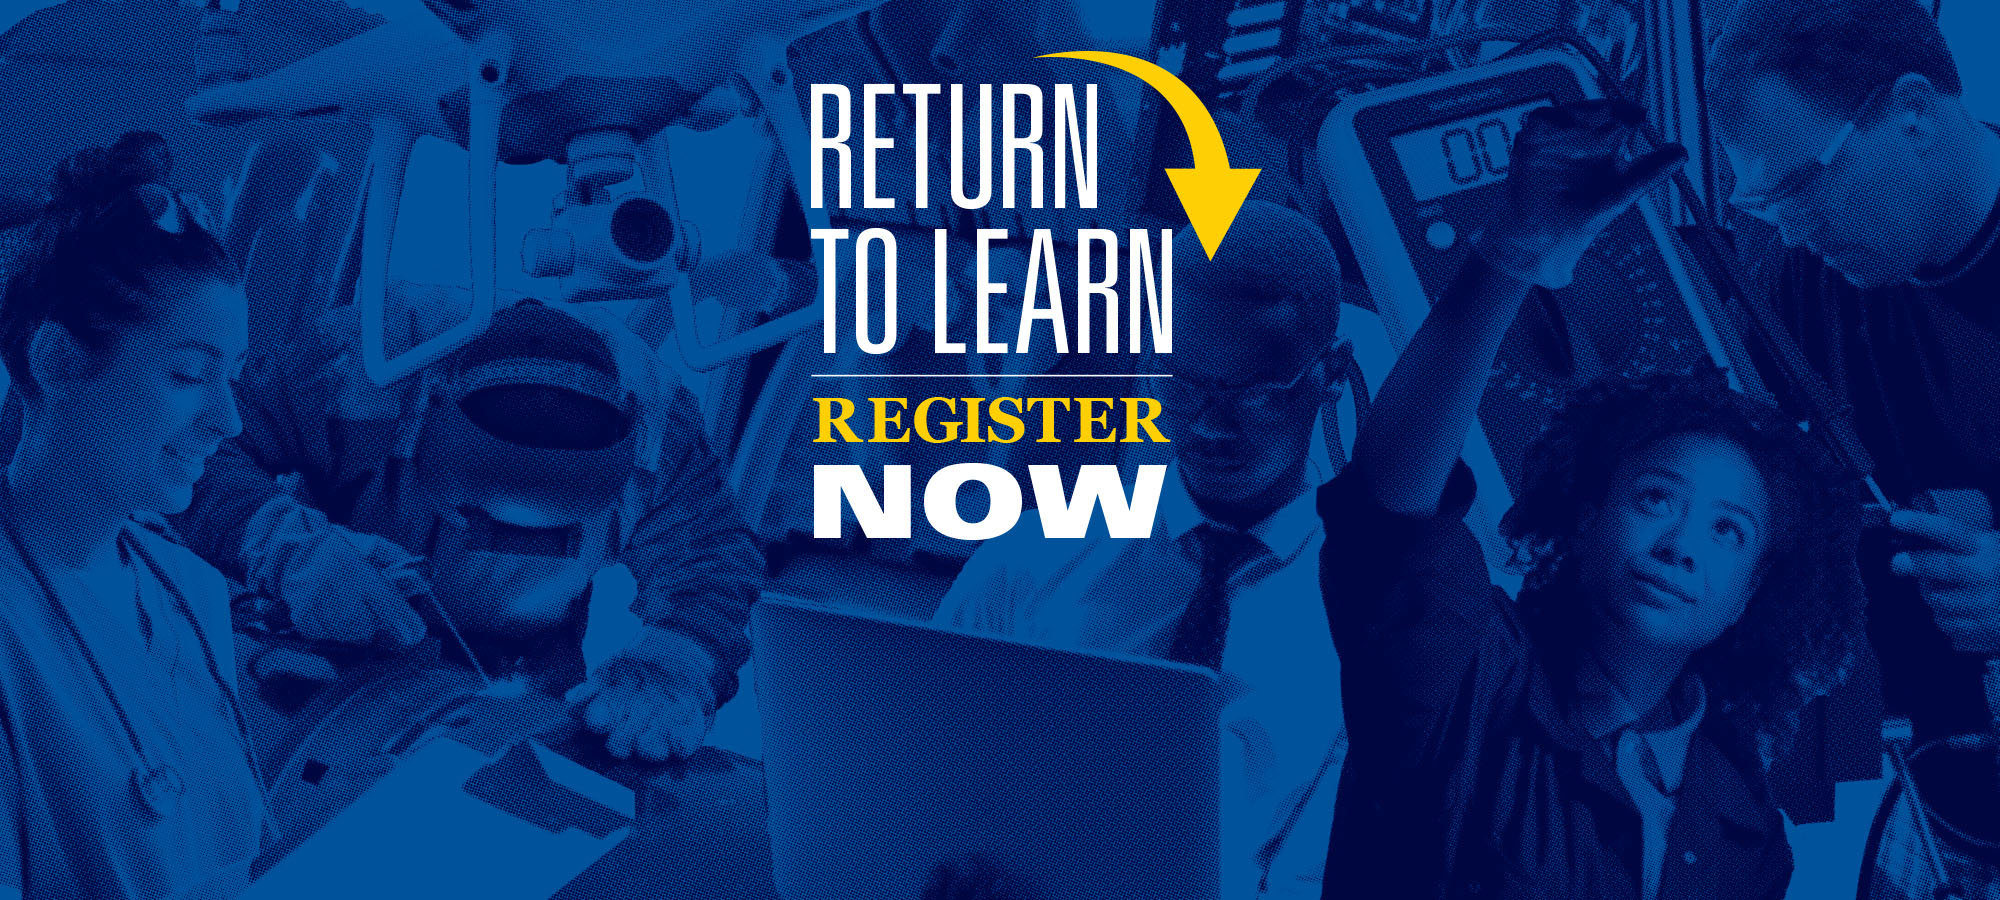 Graphic with Return to Learn Register Now